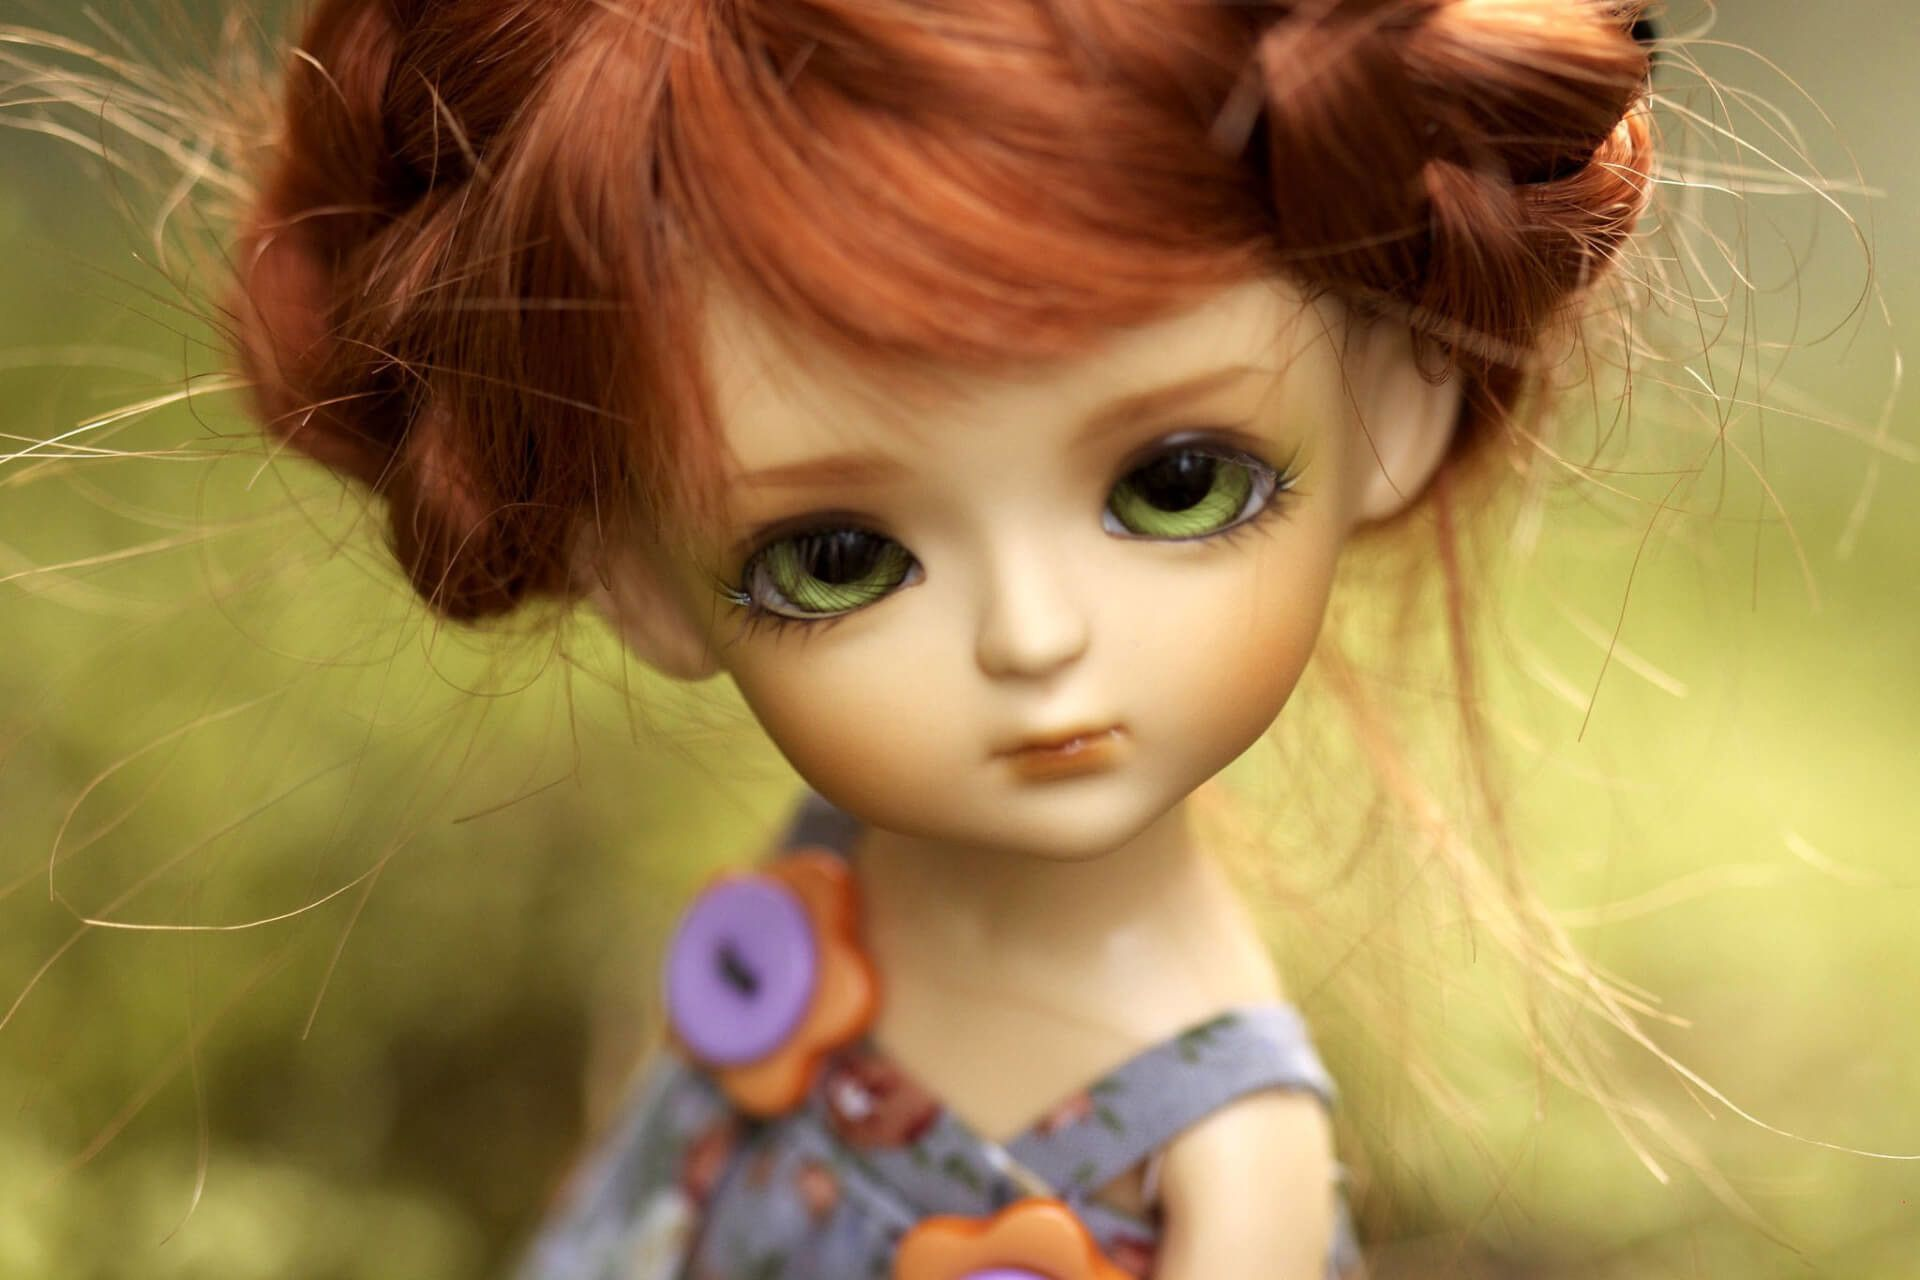 Cute Baby Doll Wallpaper By Vikrant Rulez D7 Free On Zedge